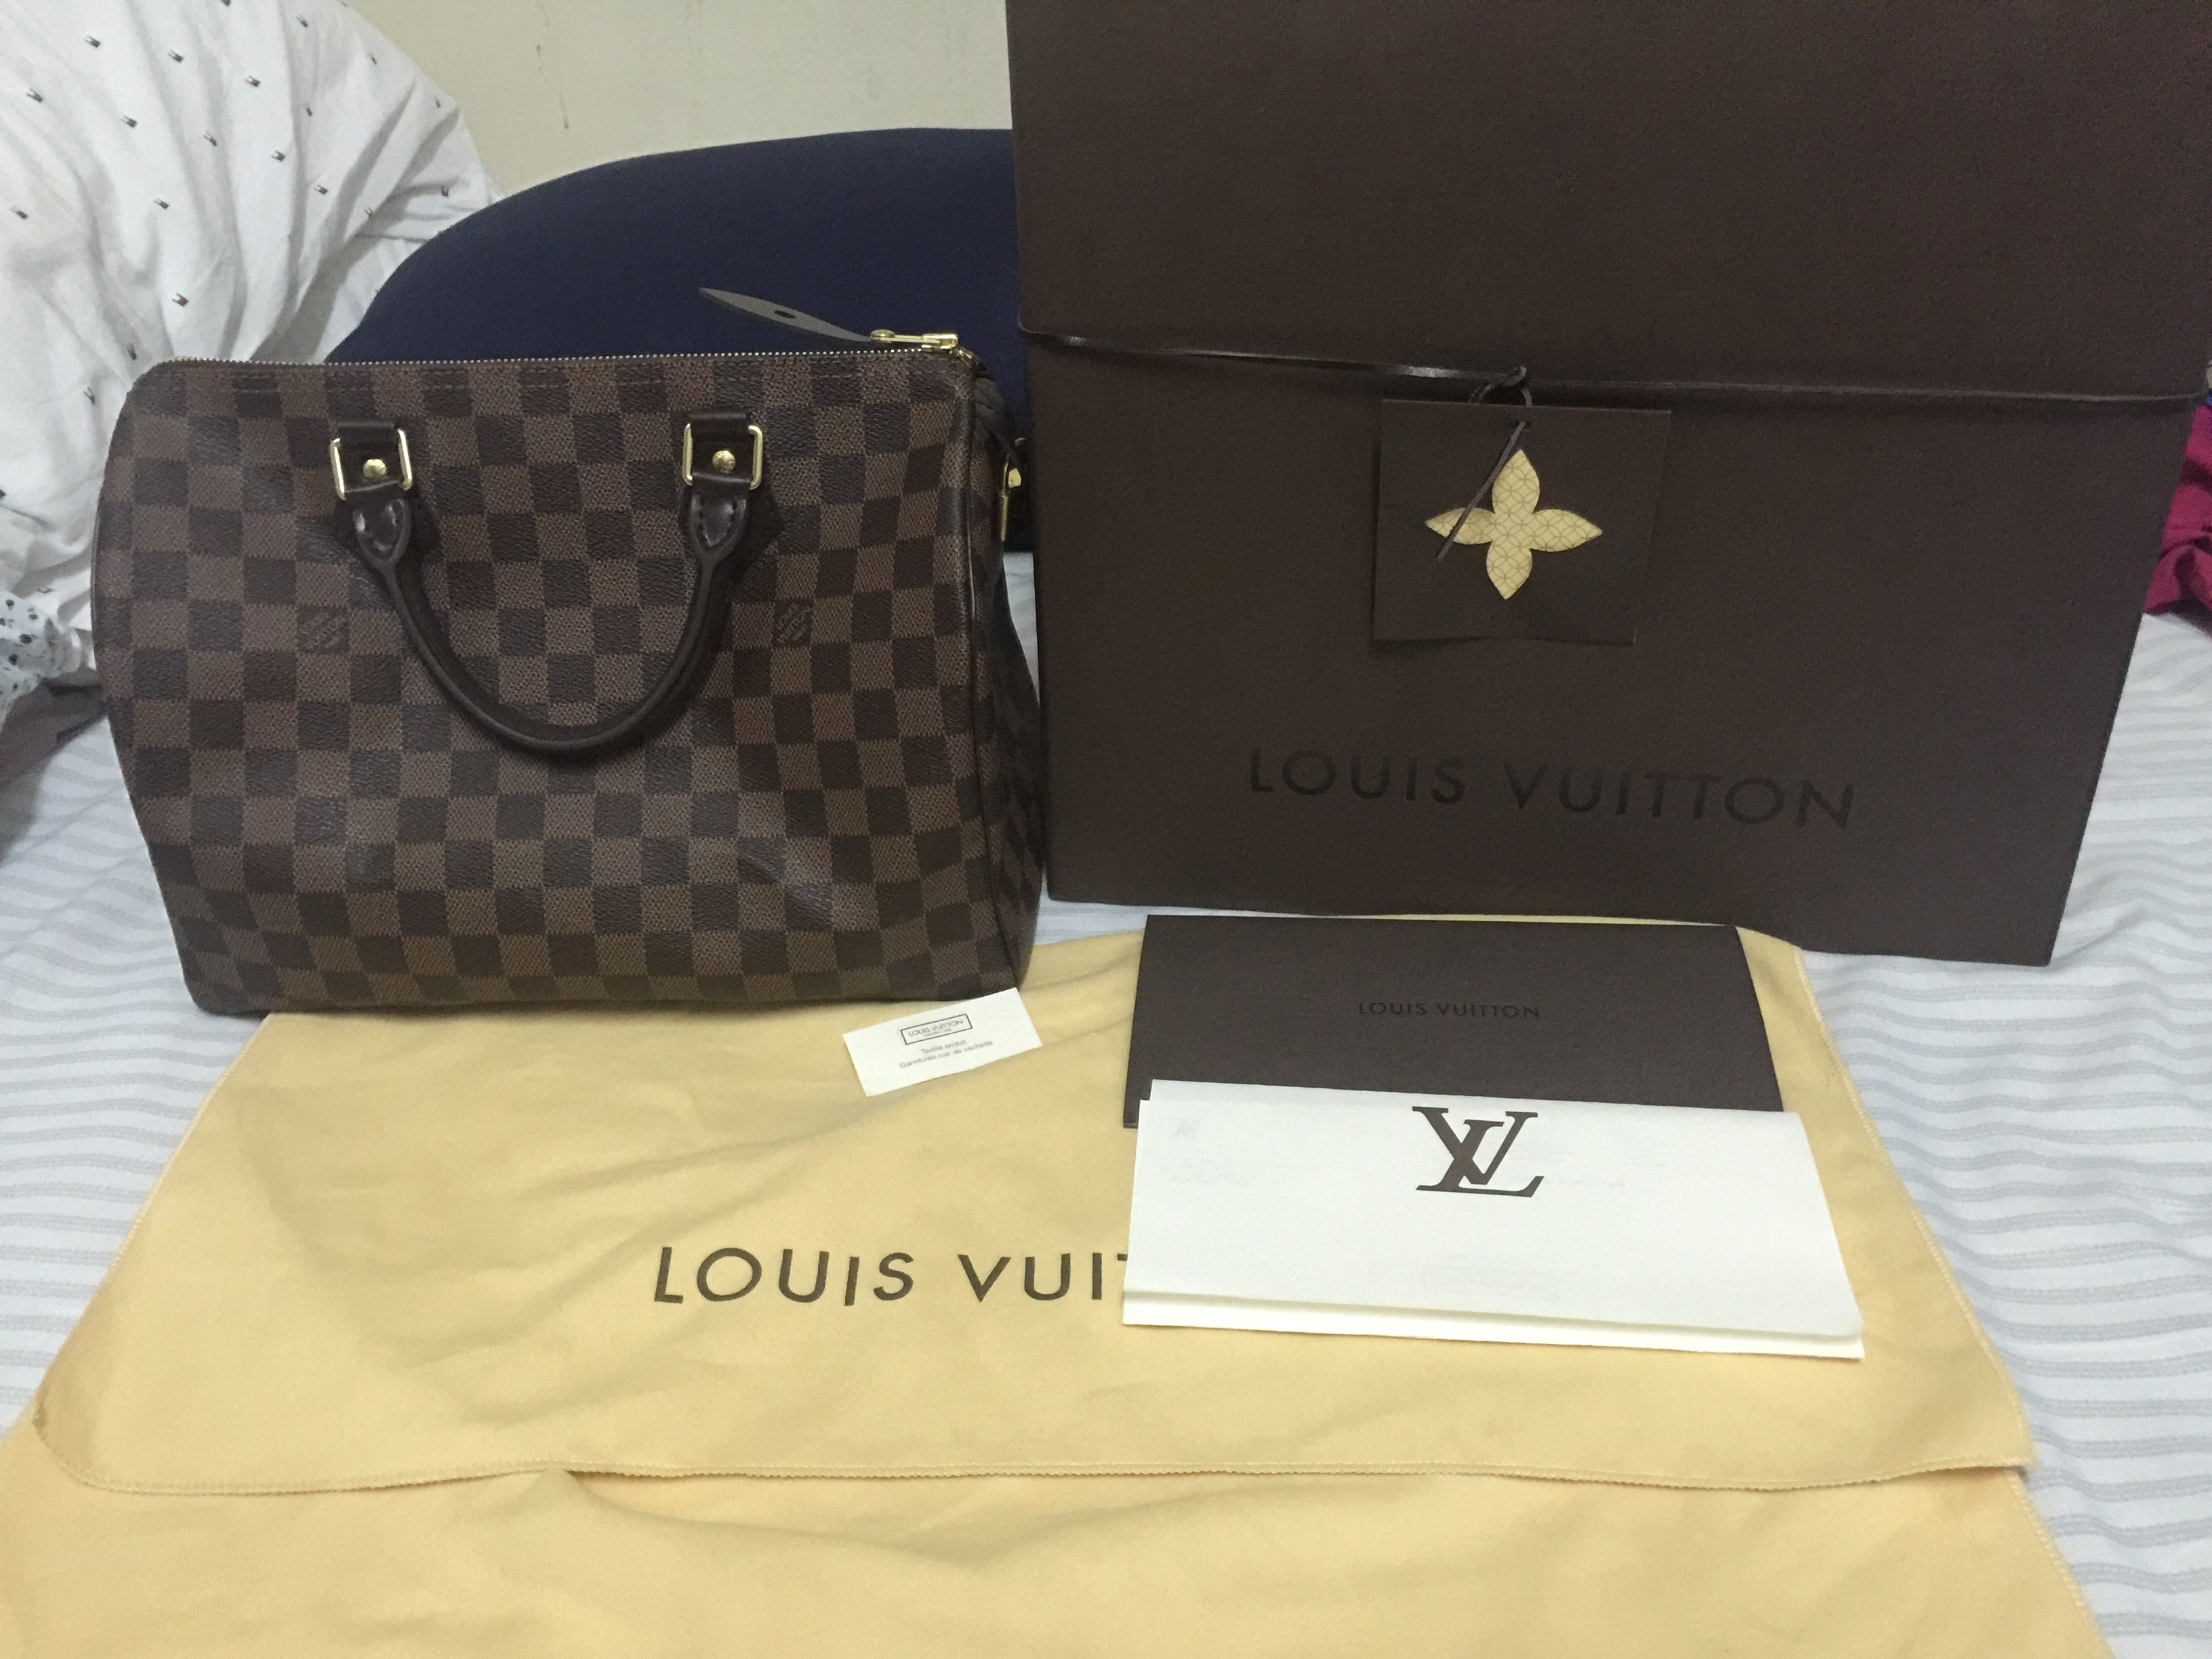 9c3348a8dba It is speedy 30 damier ebene size 30. The bag is new. The seller advised me  to go to lv store for heat stamping for authentication.